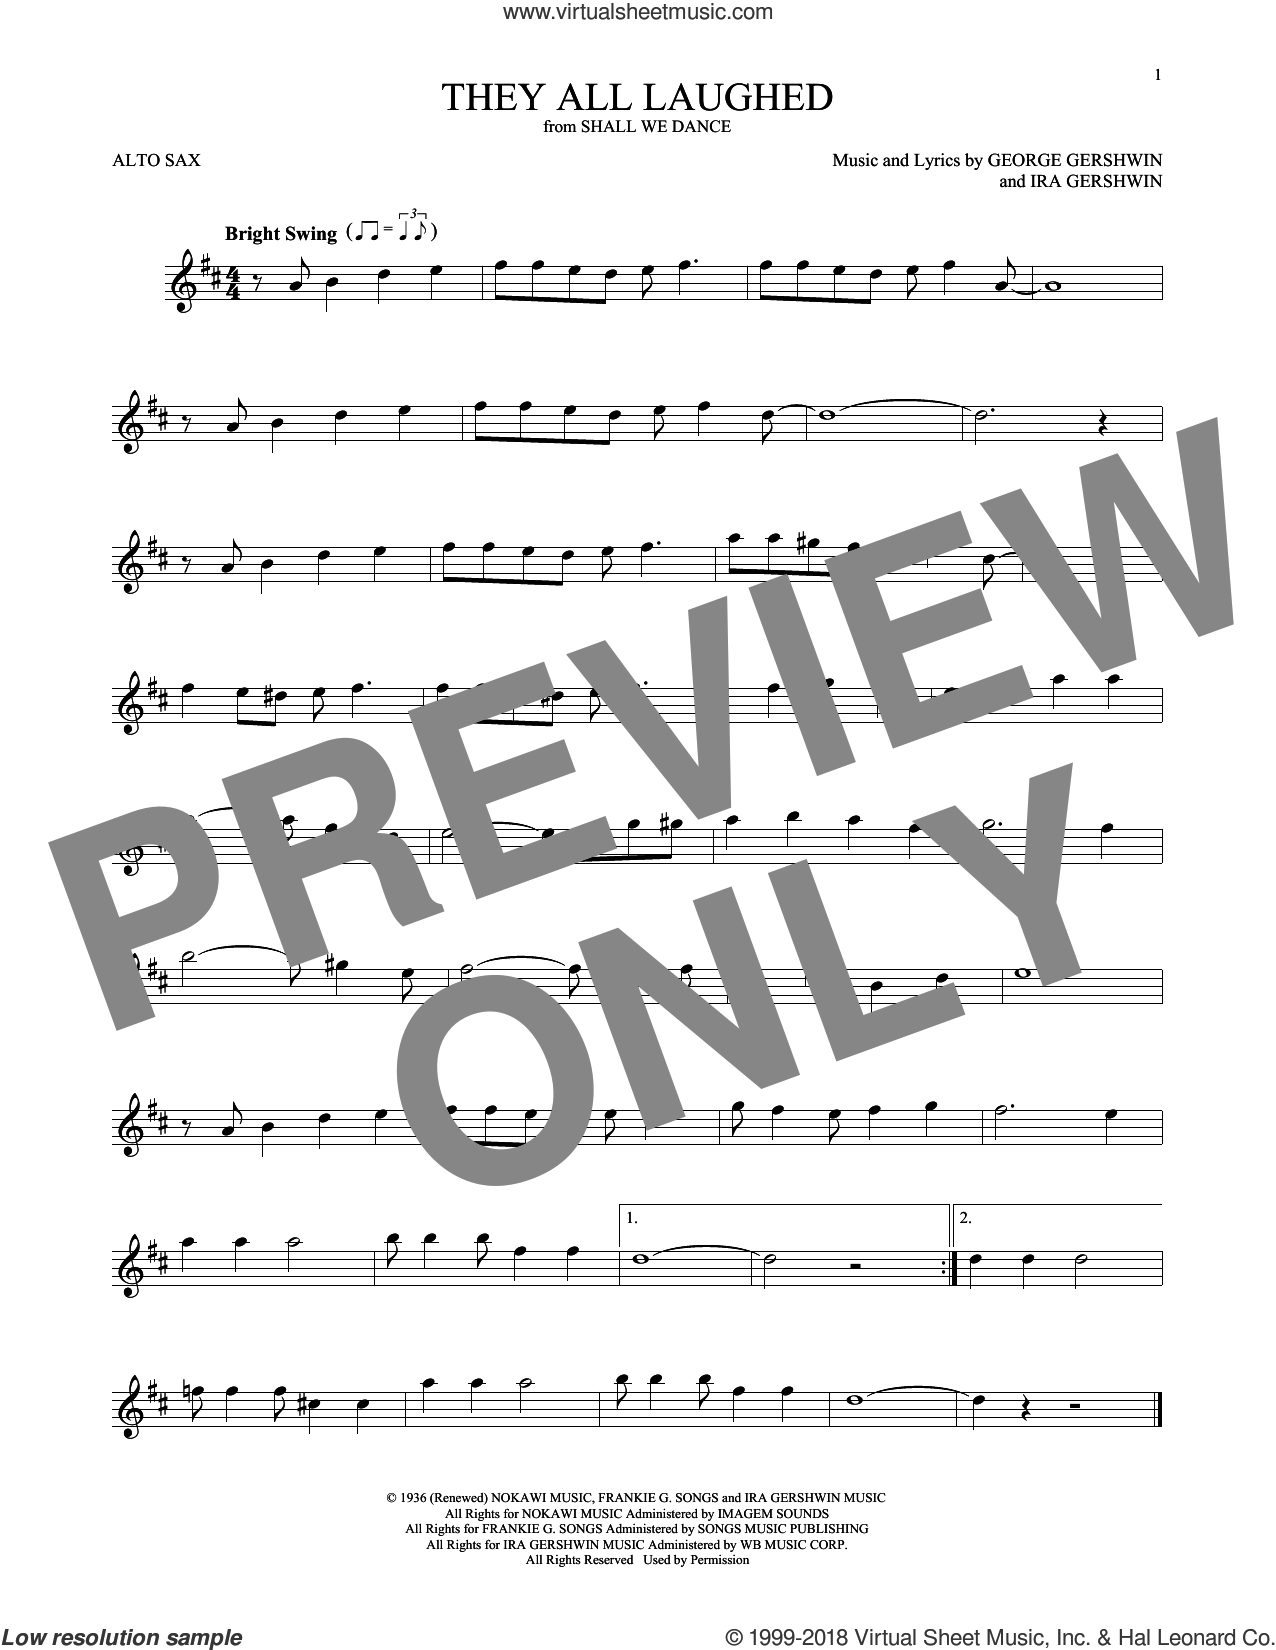 They All Laughed sheet music for alto saxophone solo by Frank Sinatra, George Gershwin and Ira Gershwin, intermediate. Score Image Preview.